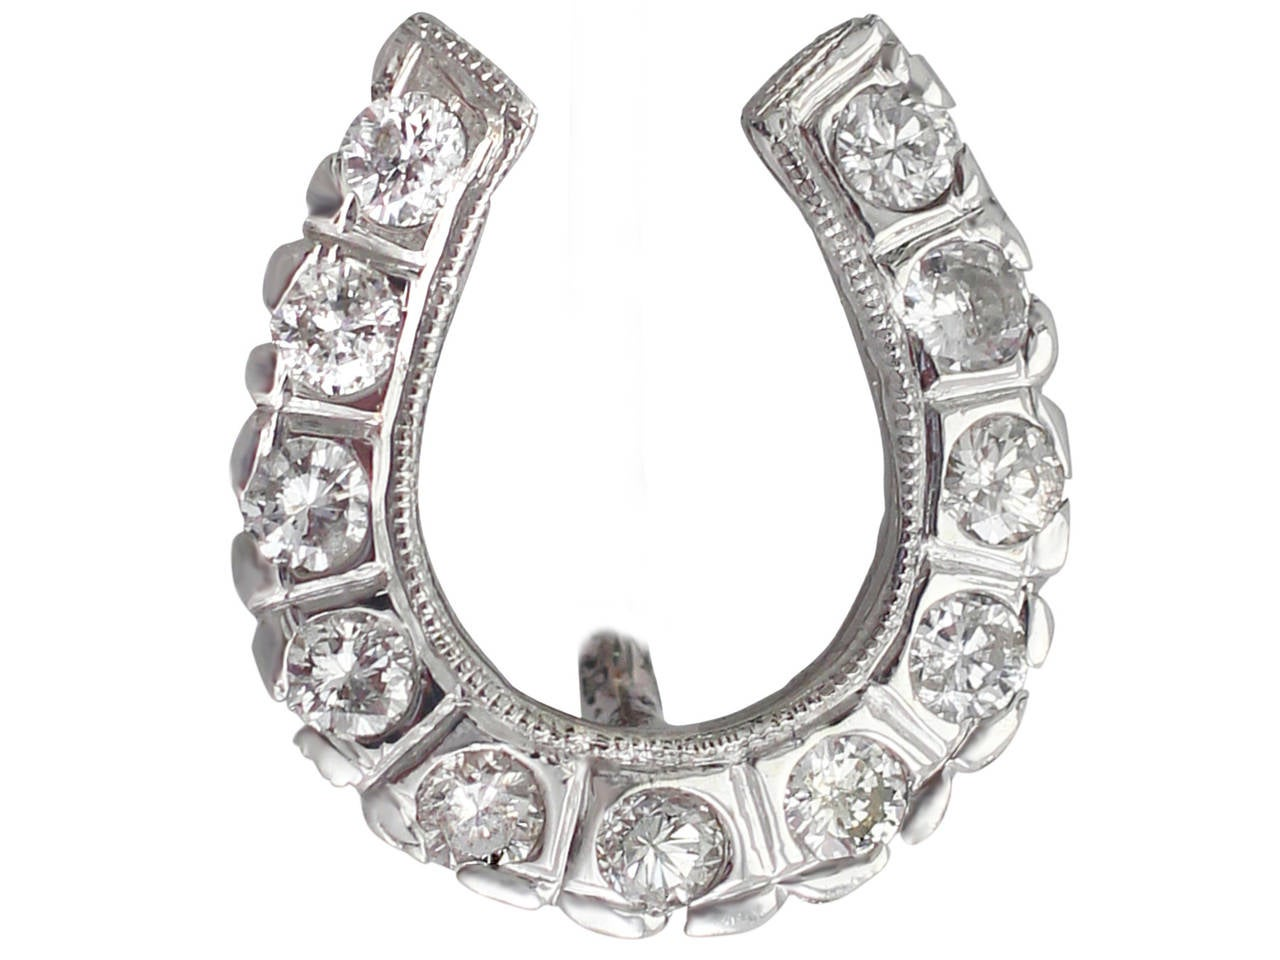 0.37Ct Diamond, 14k White Gold Horseshoe Pin Brooch - Vintage Circa 1940 7